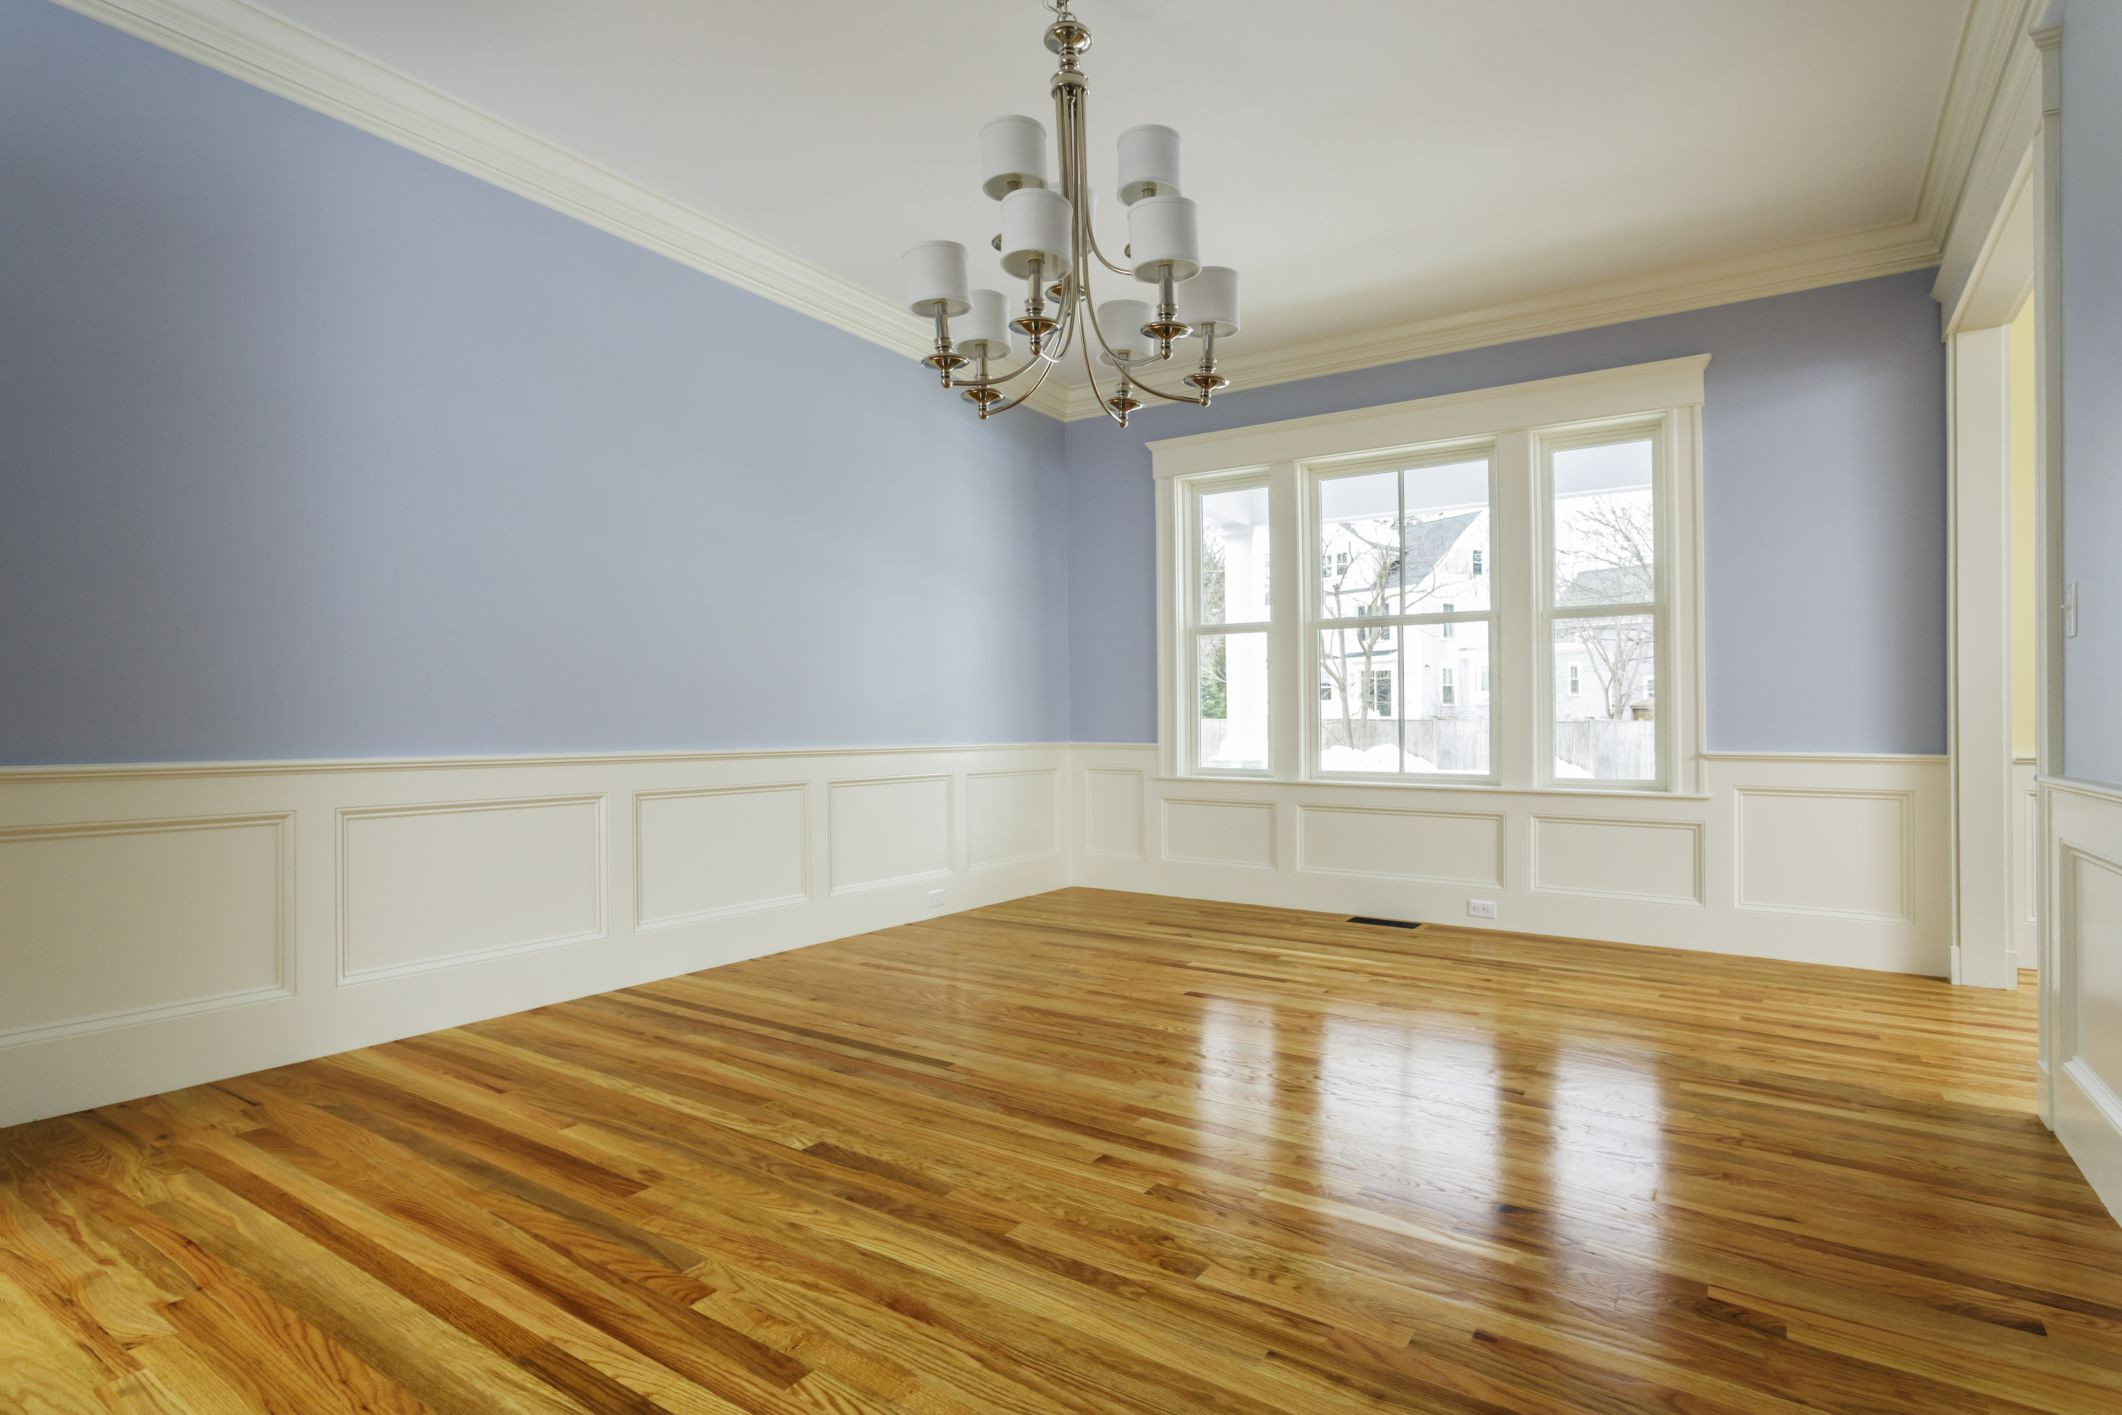 hardwood floor equipment for sale of the cost to refinish hardwood floors intended for 168686572 highres 56a2fd773df78cf7727b6cb3